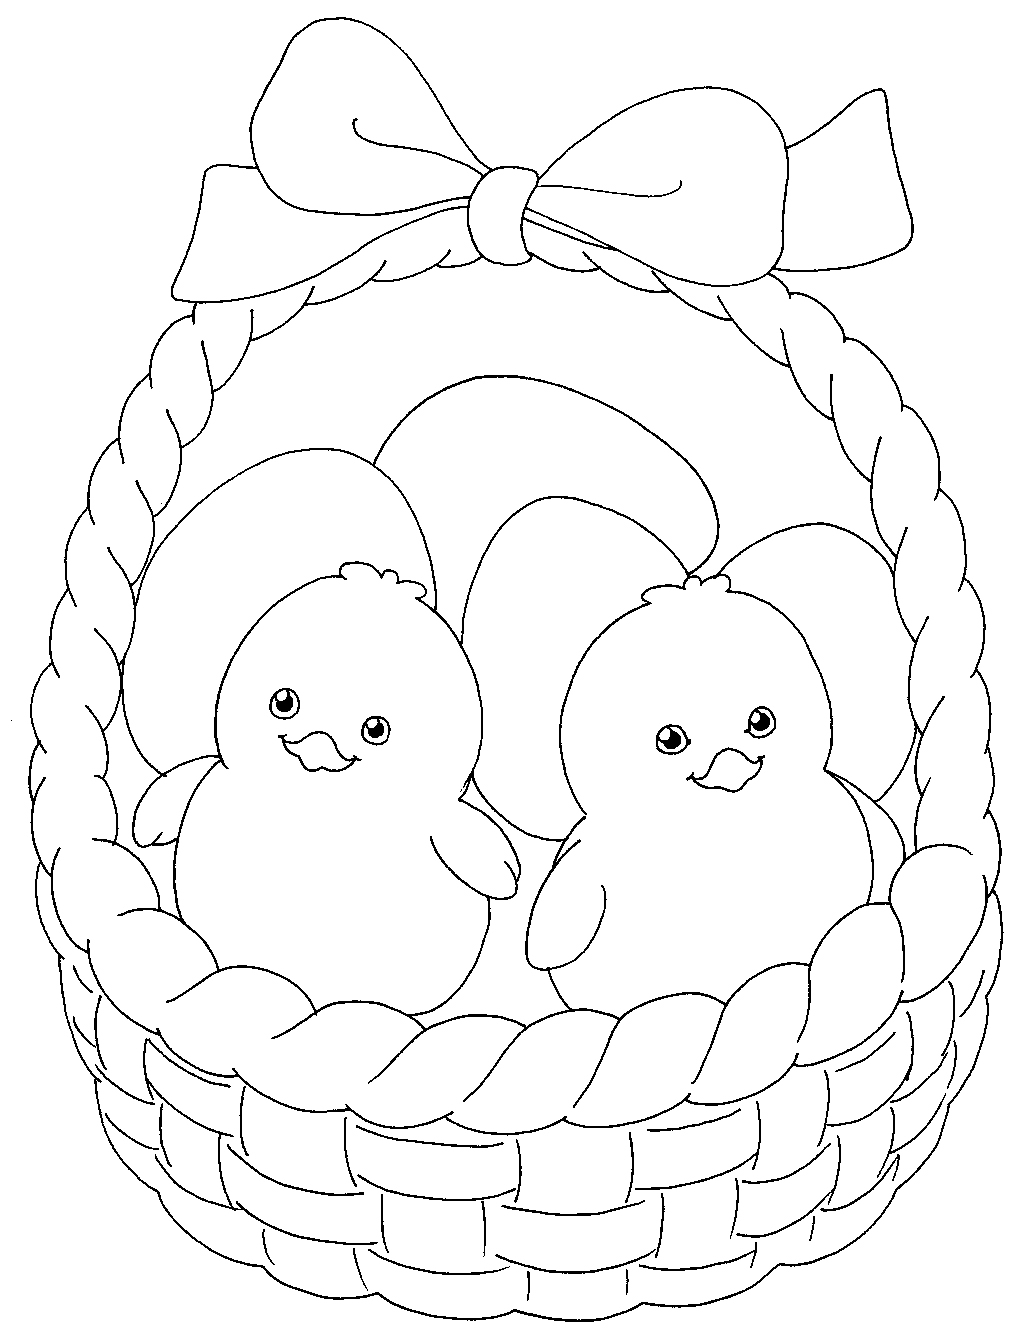 easter chicks coloring pages printable - photo#5